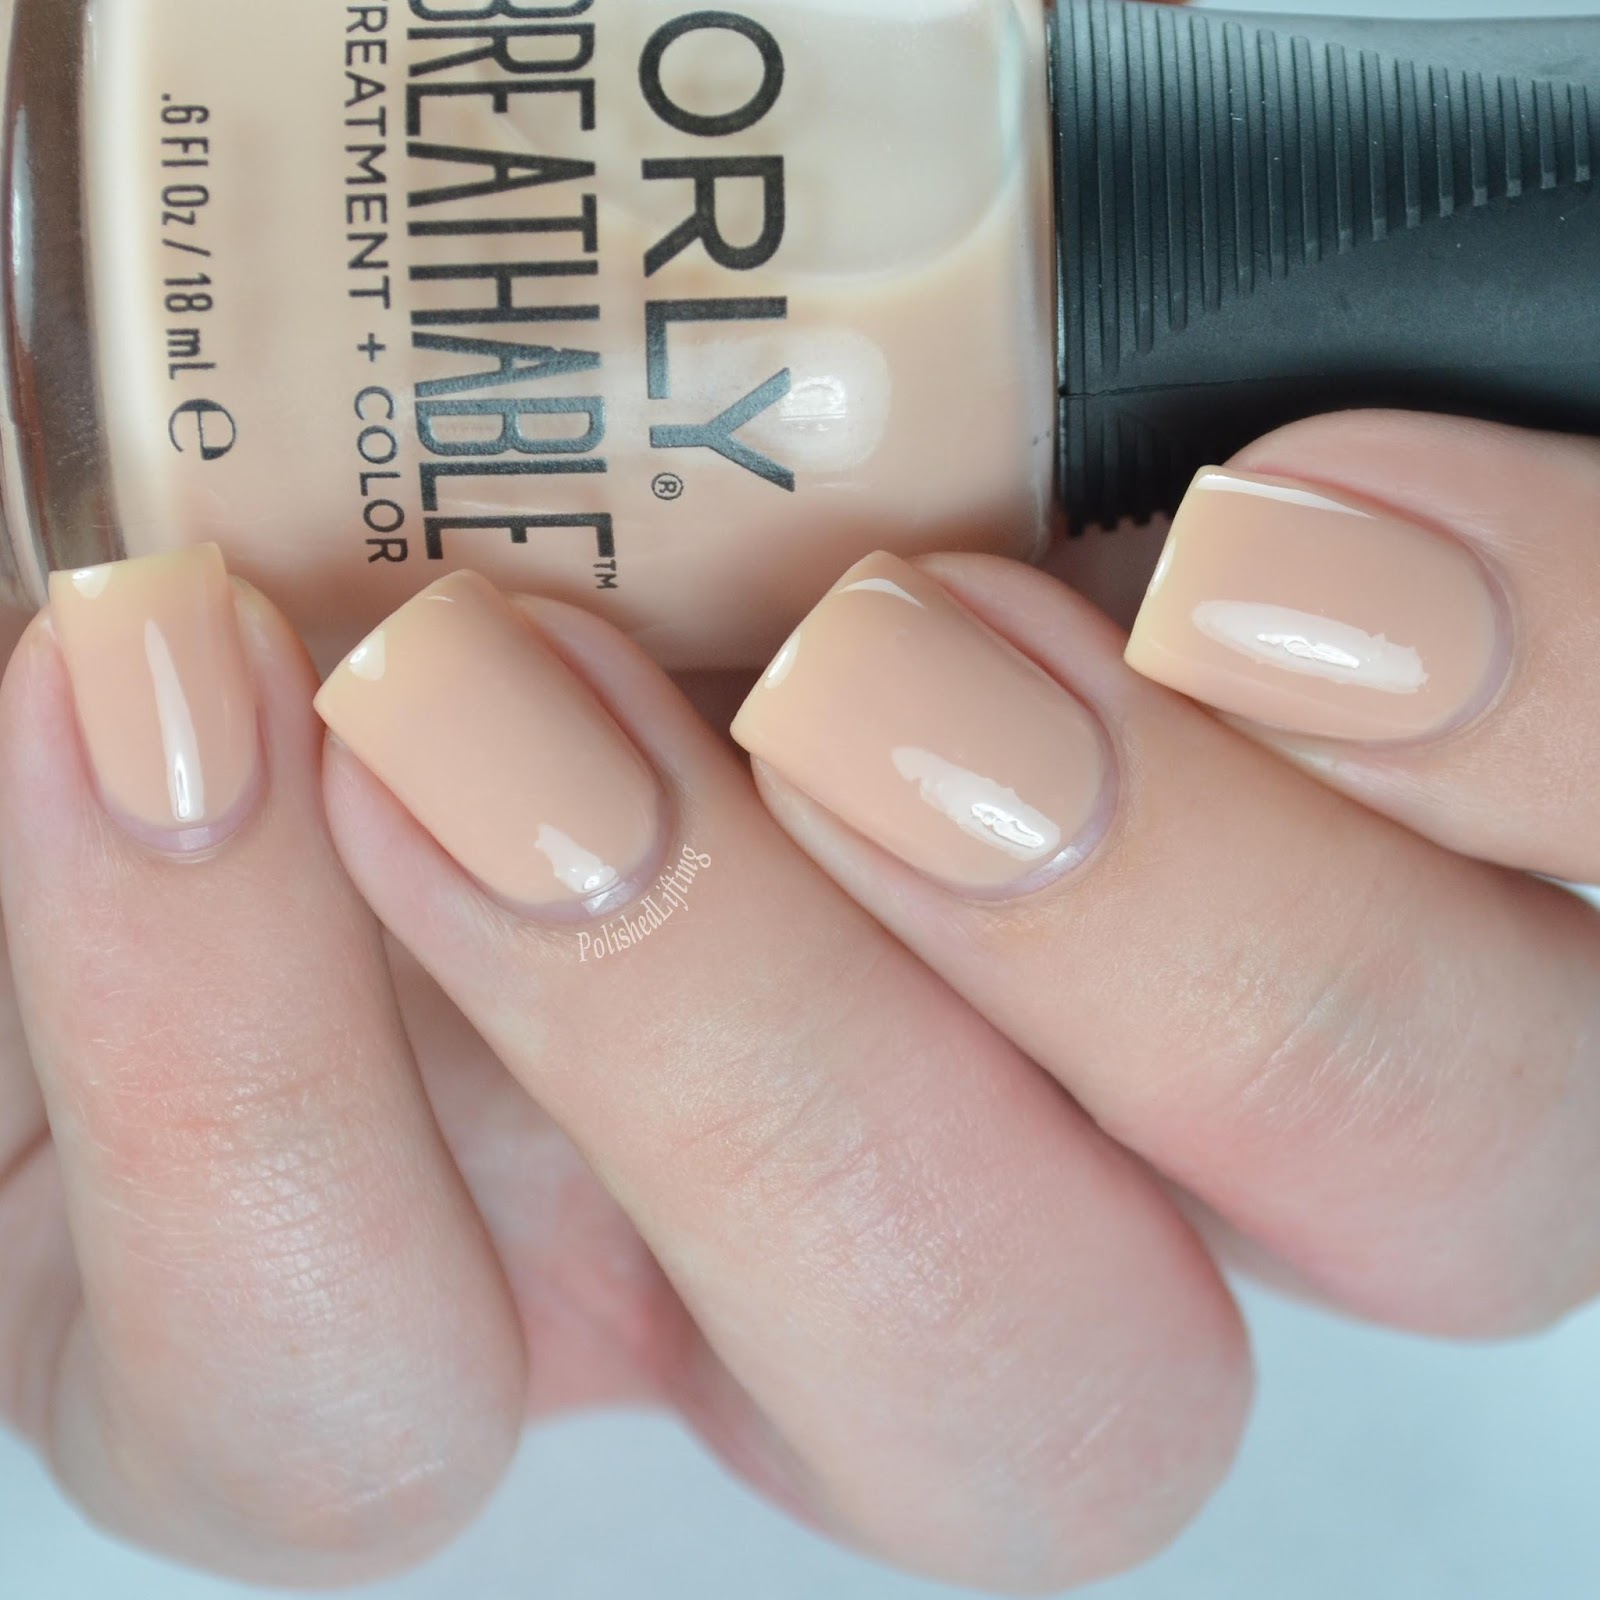 Polished Lifting Orly Breathable Swatches Nail Art